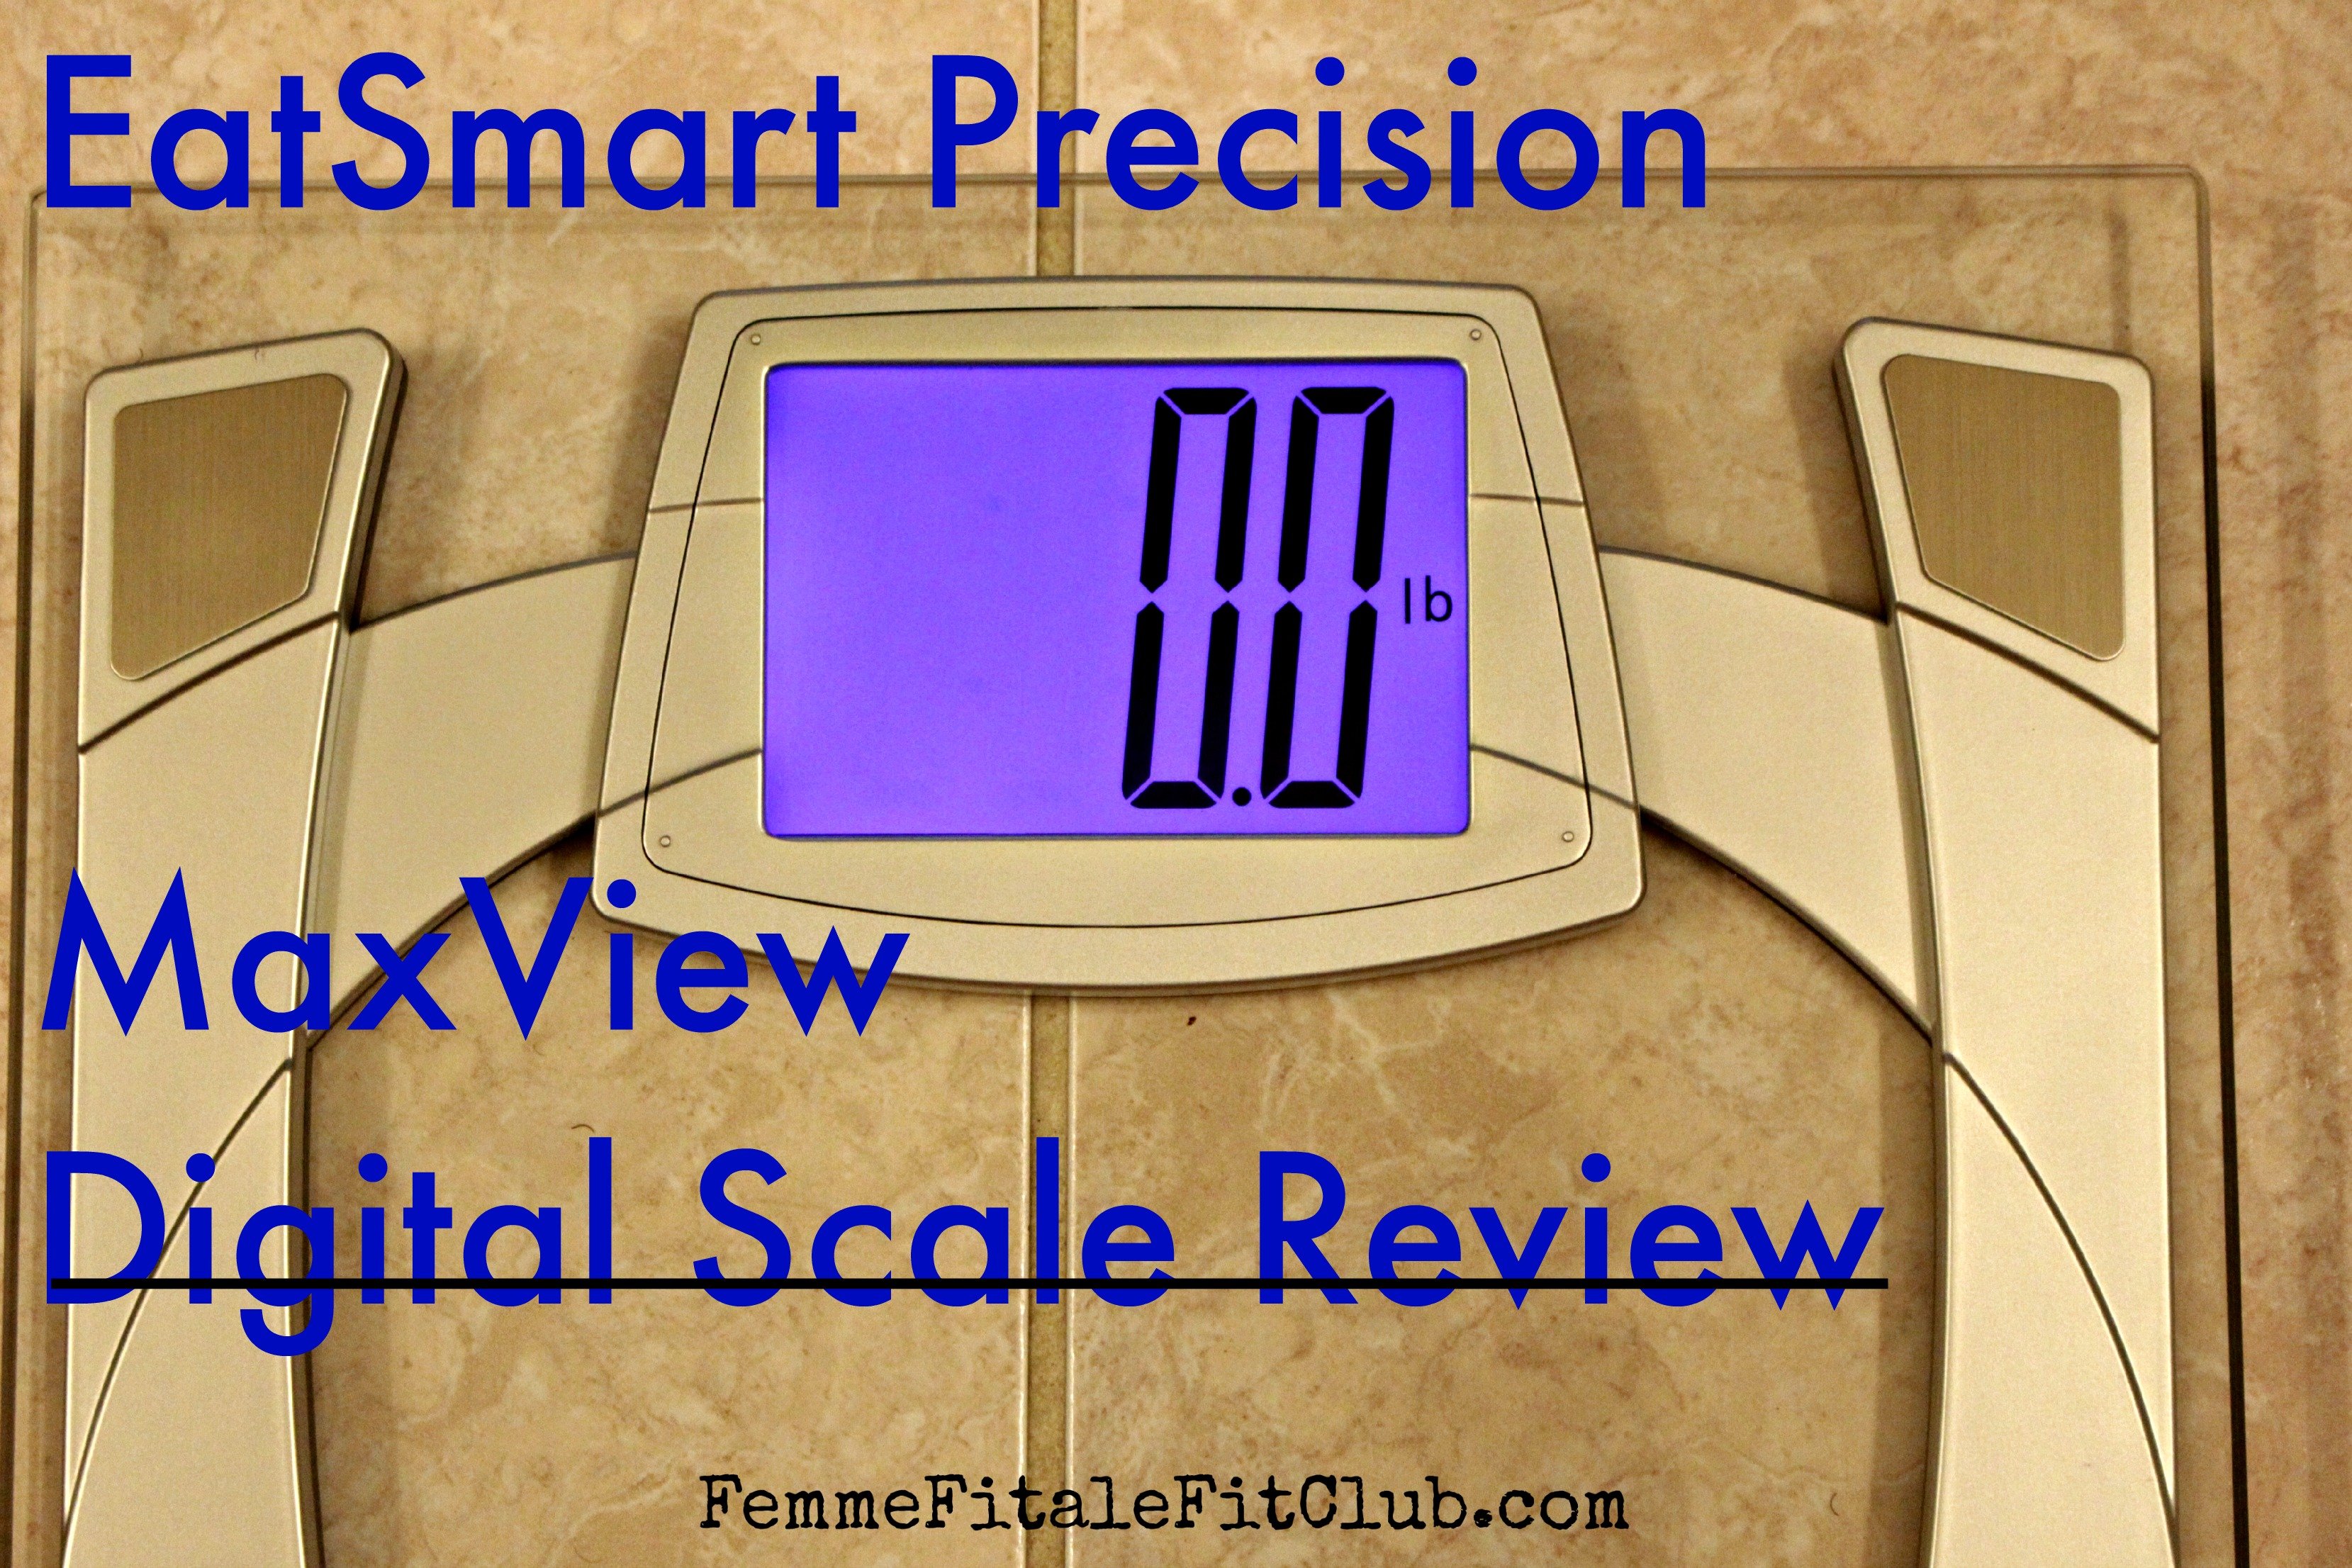 EatSmart Precision MaxView Digital Scale